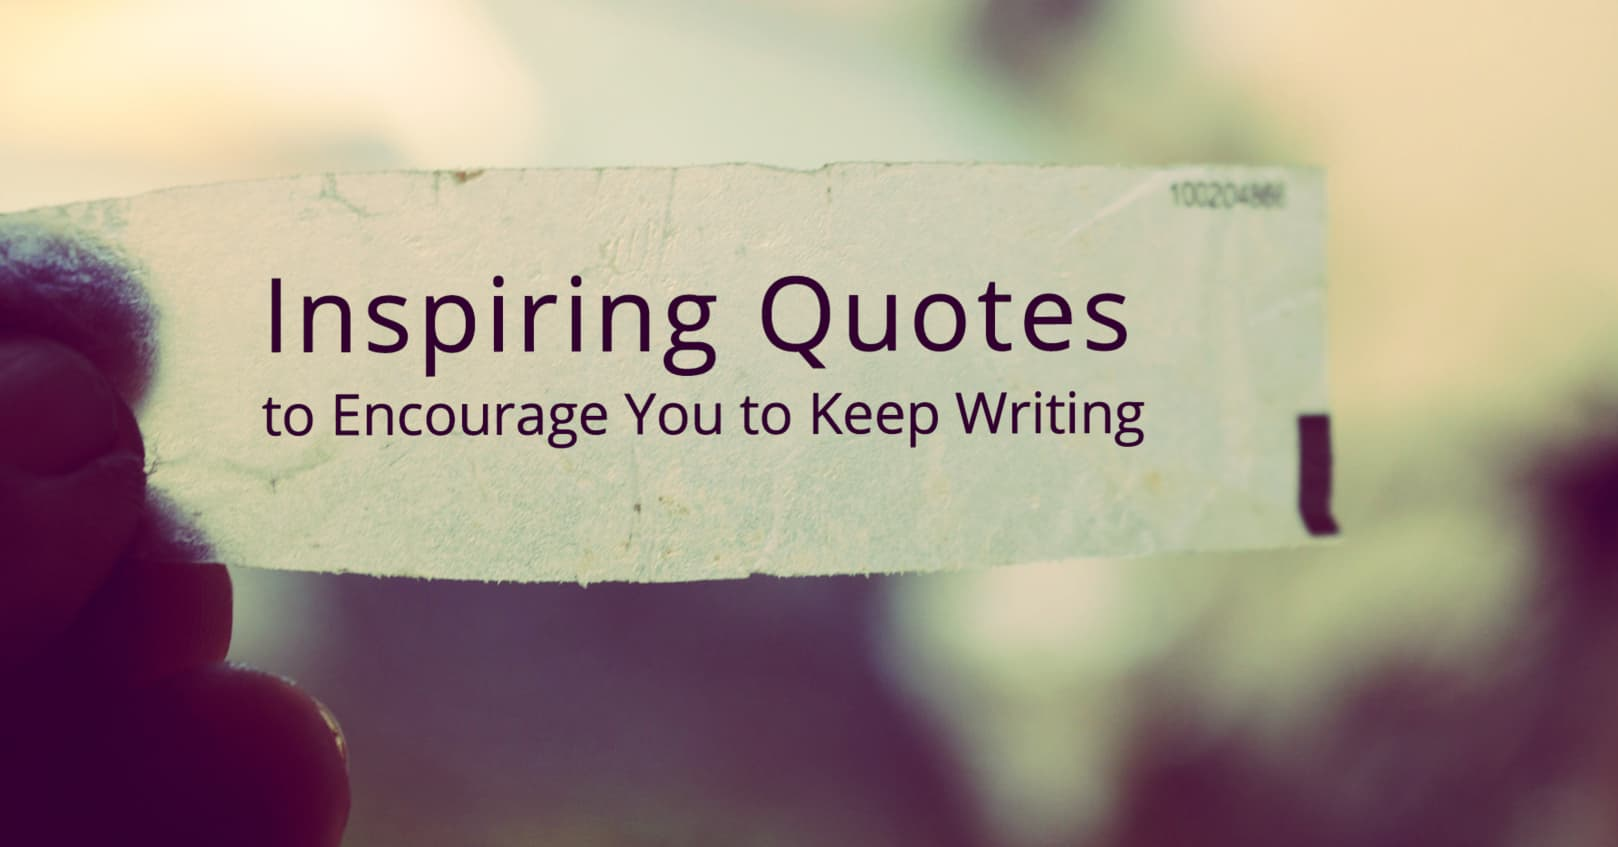 Inspiring Quotes to Keep You Inspired